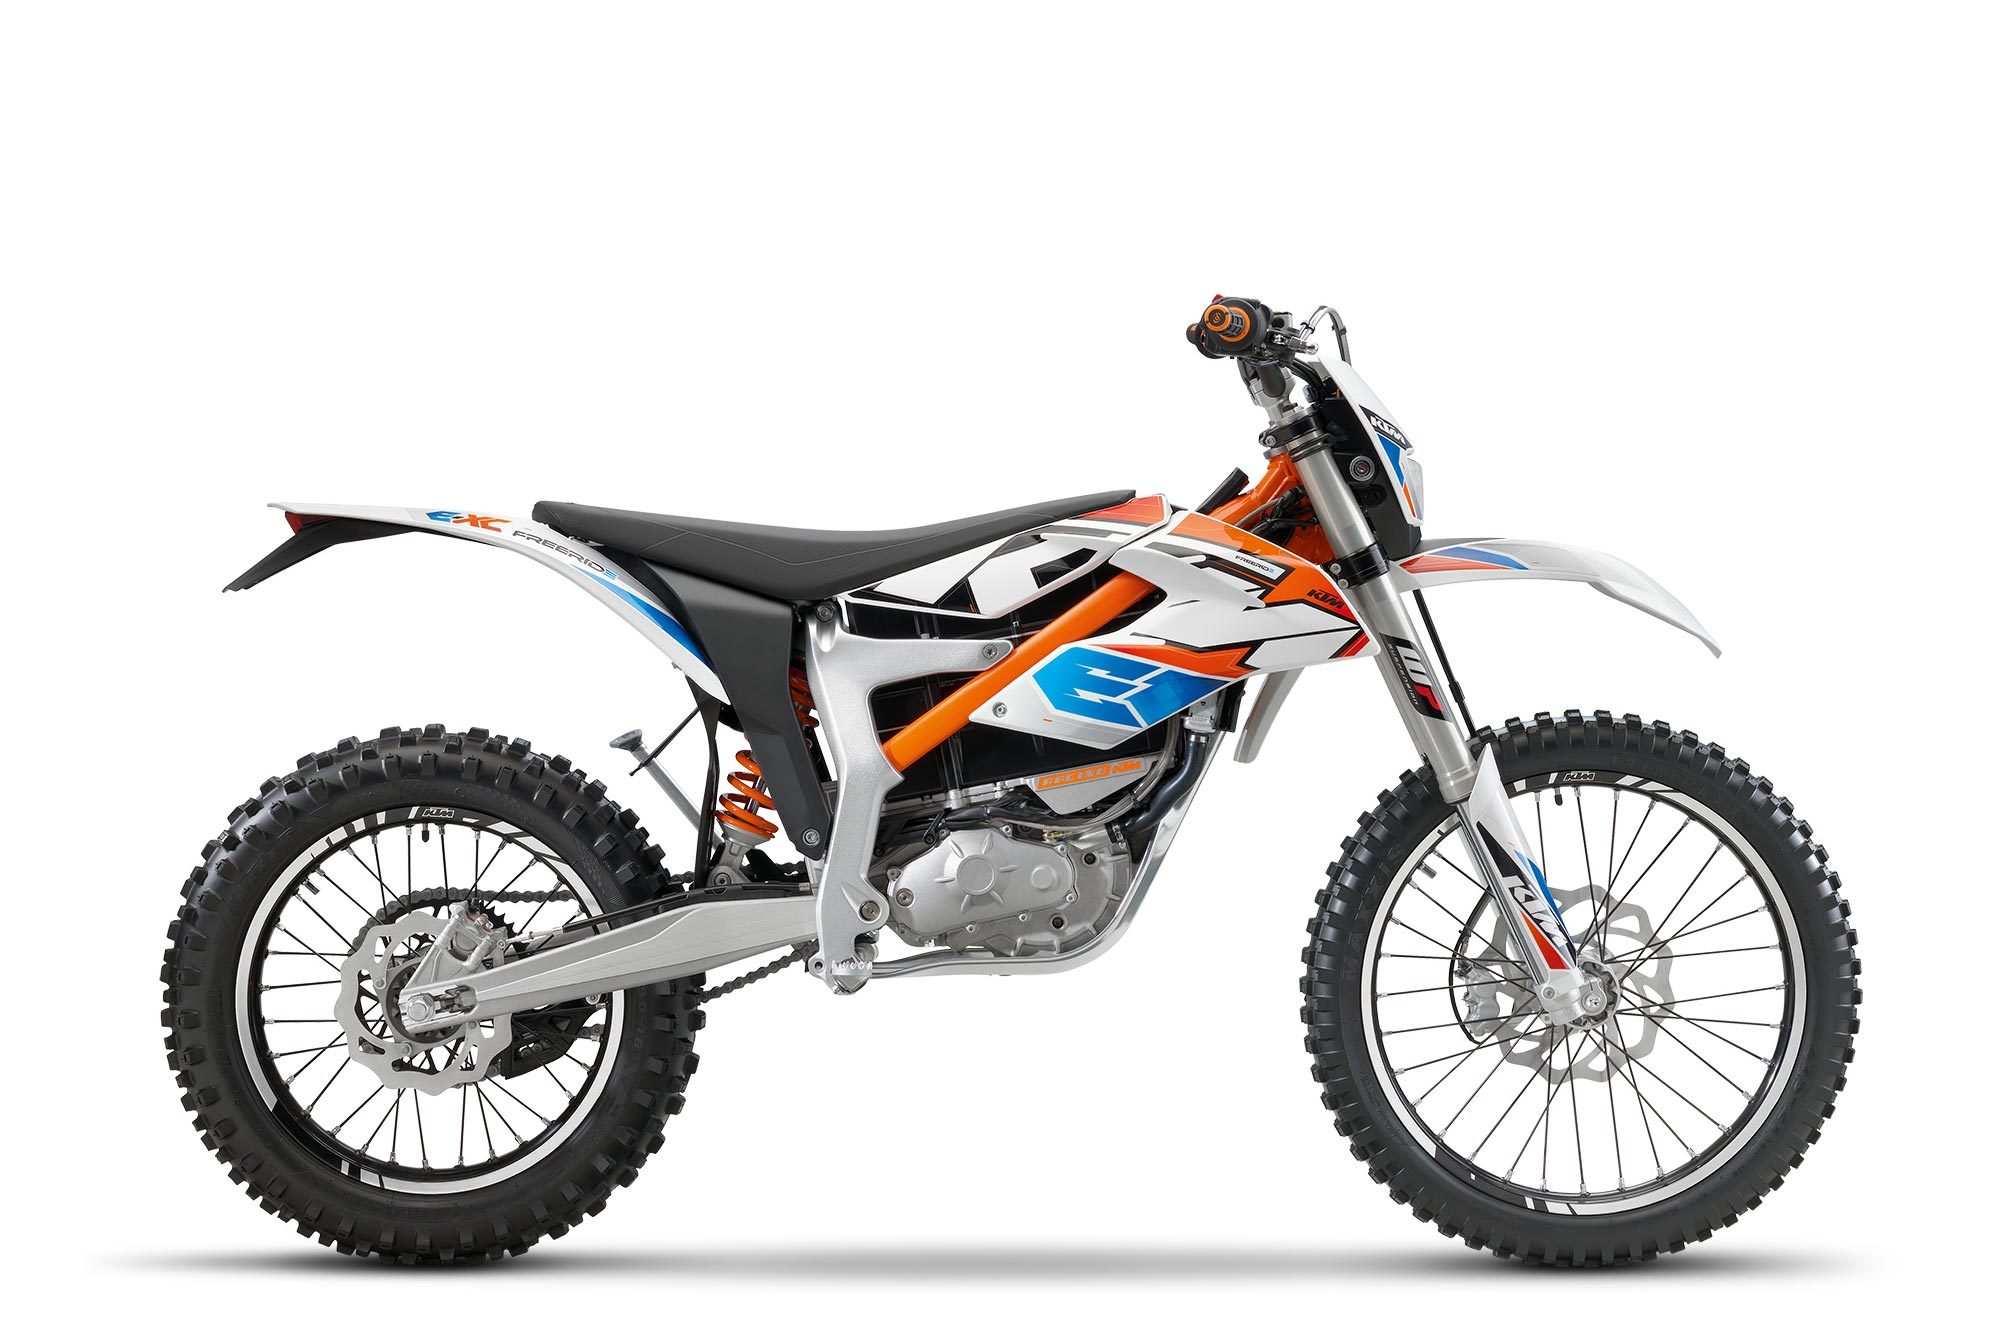 Ktm Finally Brings The Freeride E Xc To The Usa